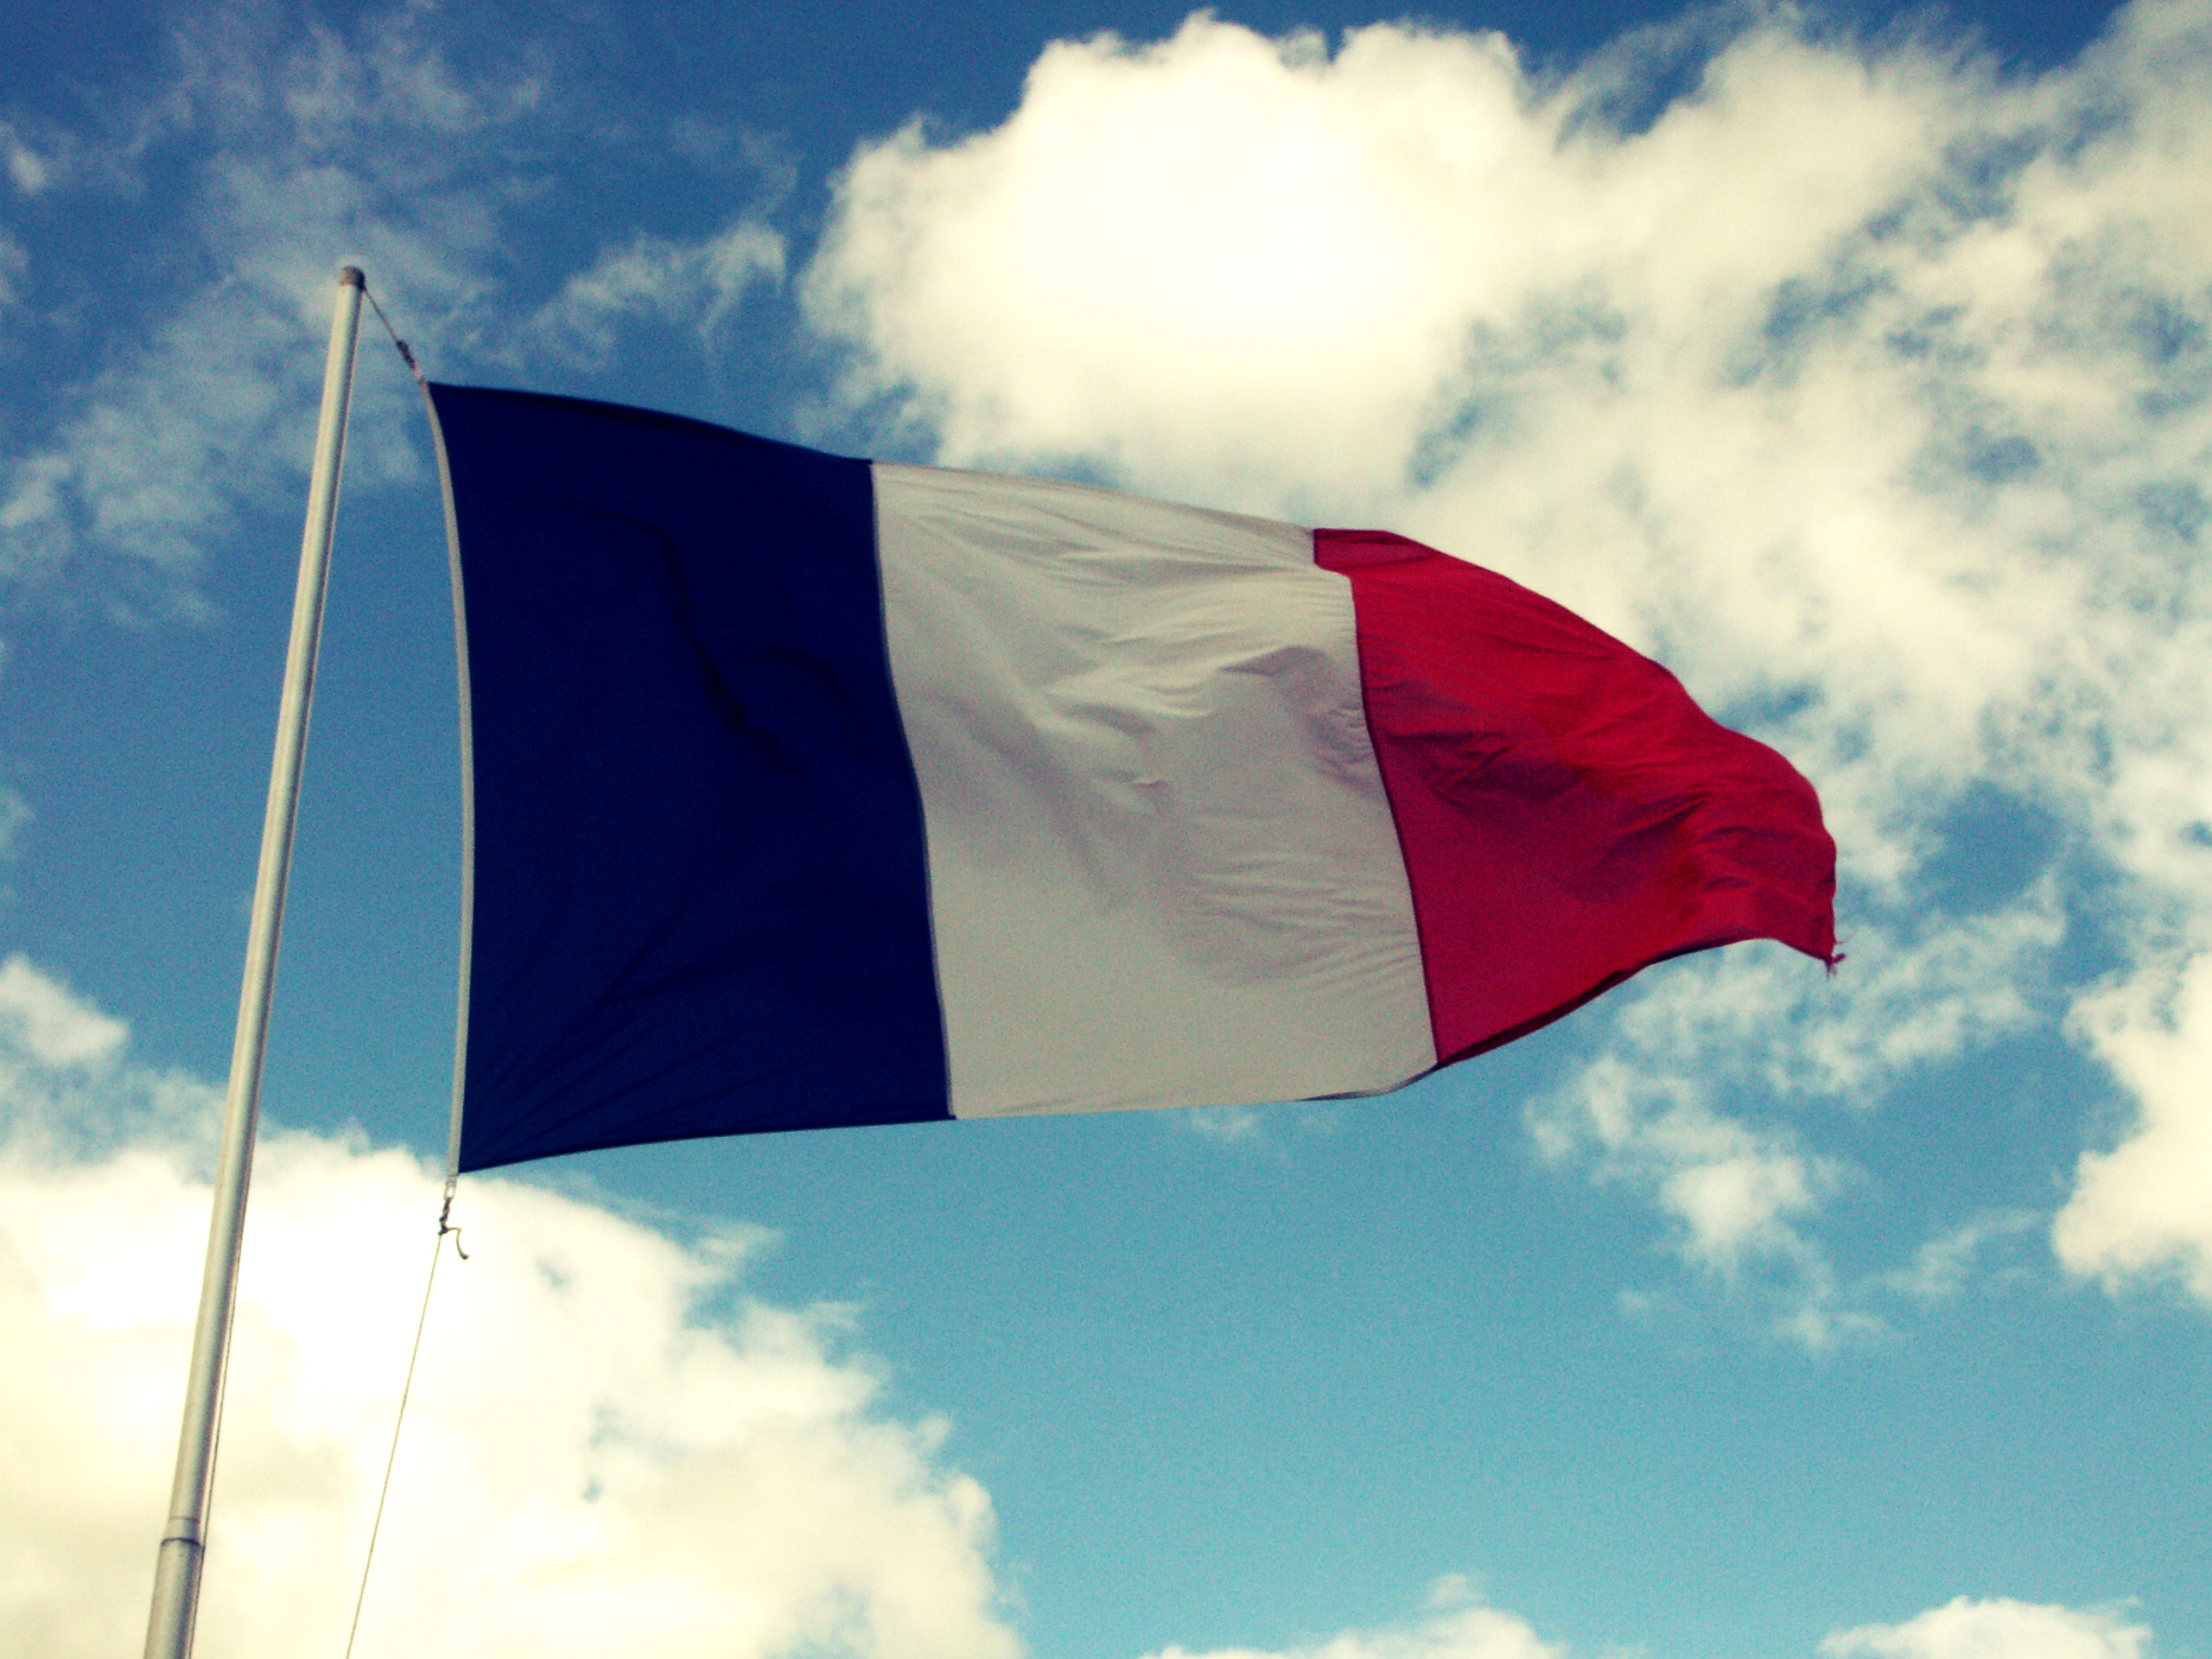 French Court Rules That Electronic Cigarettes Be Treated As Tobacco